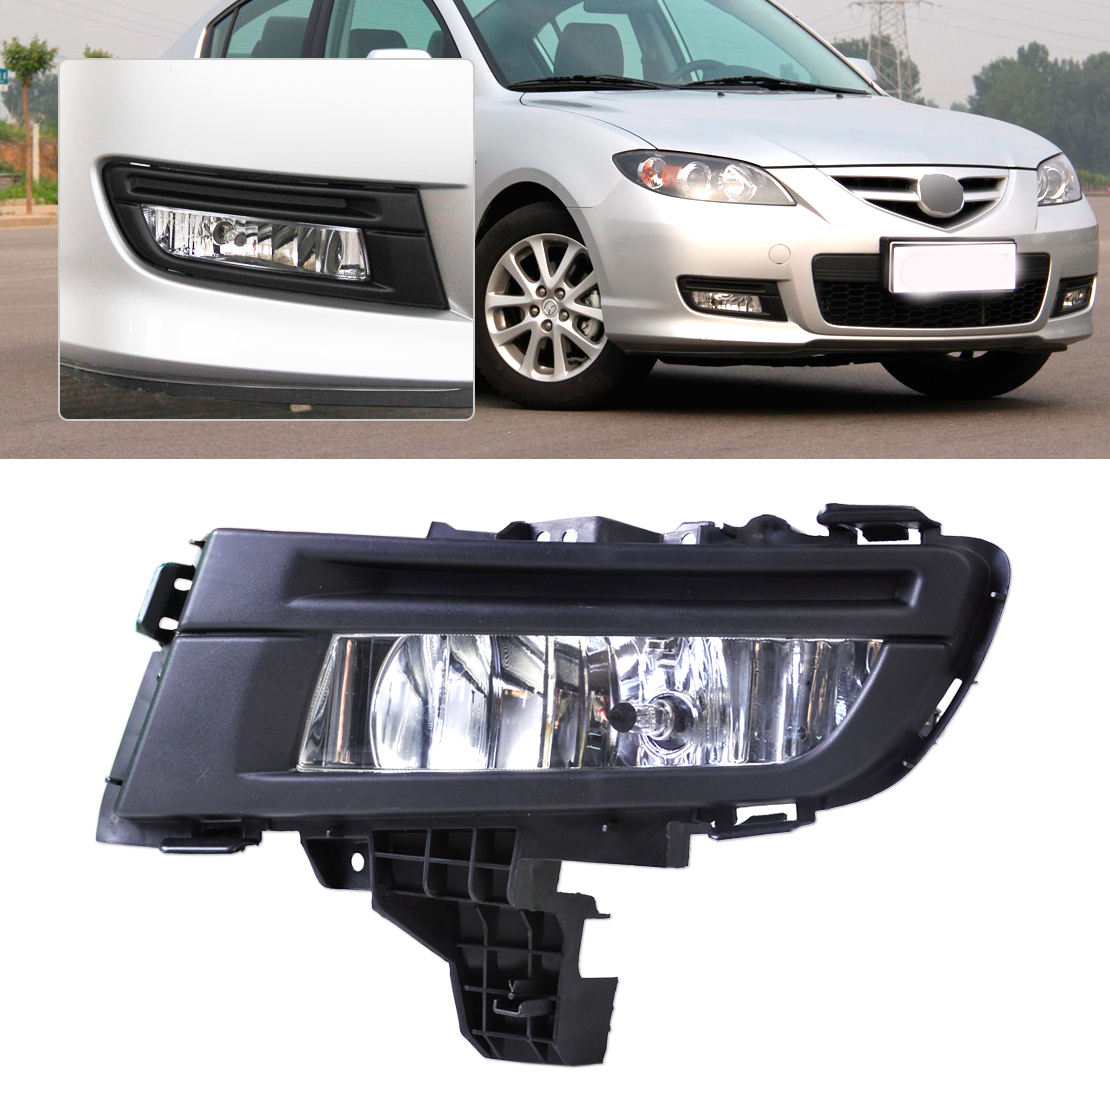 DWCX Front Right Side Fog Light Lamp for Mazda 3 2007 2008 2009 approx. 29cm x 12cm free shipping for vw passat b6 2006 2007 2008 2009 2010 2011 new front left and right side high quality 9 led fog lamp fog light